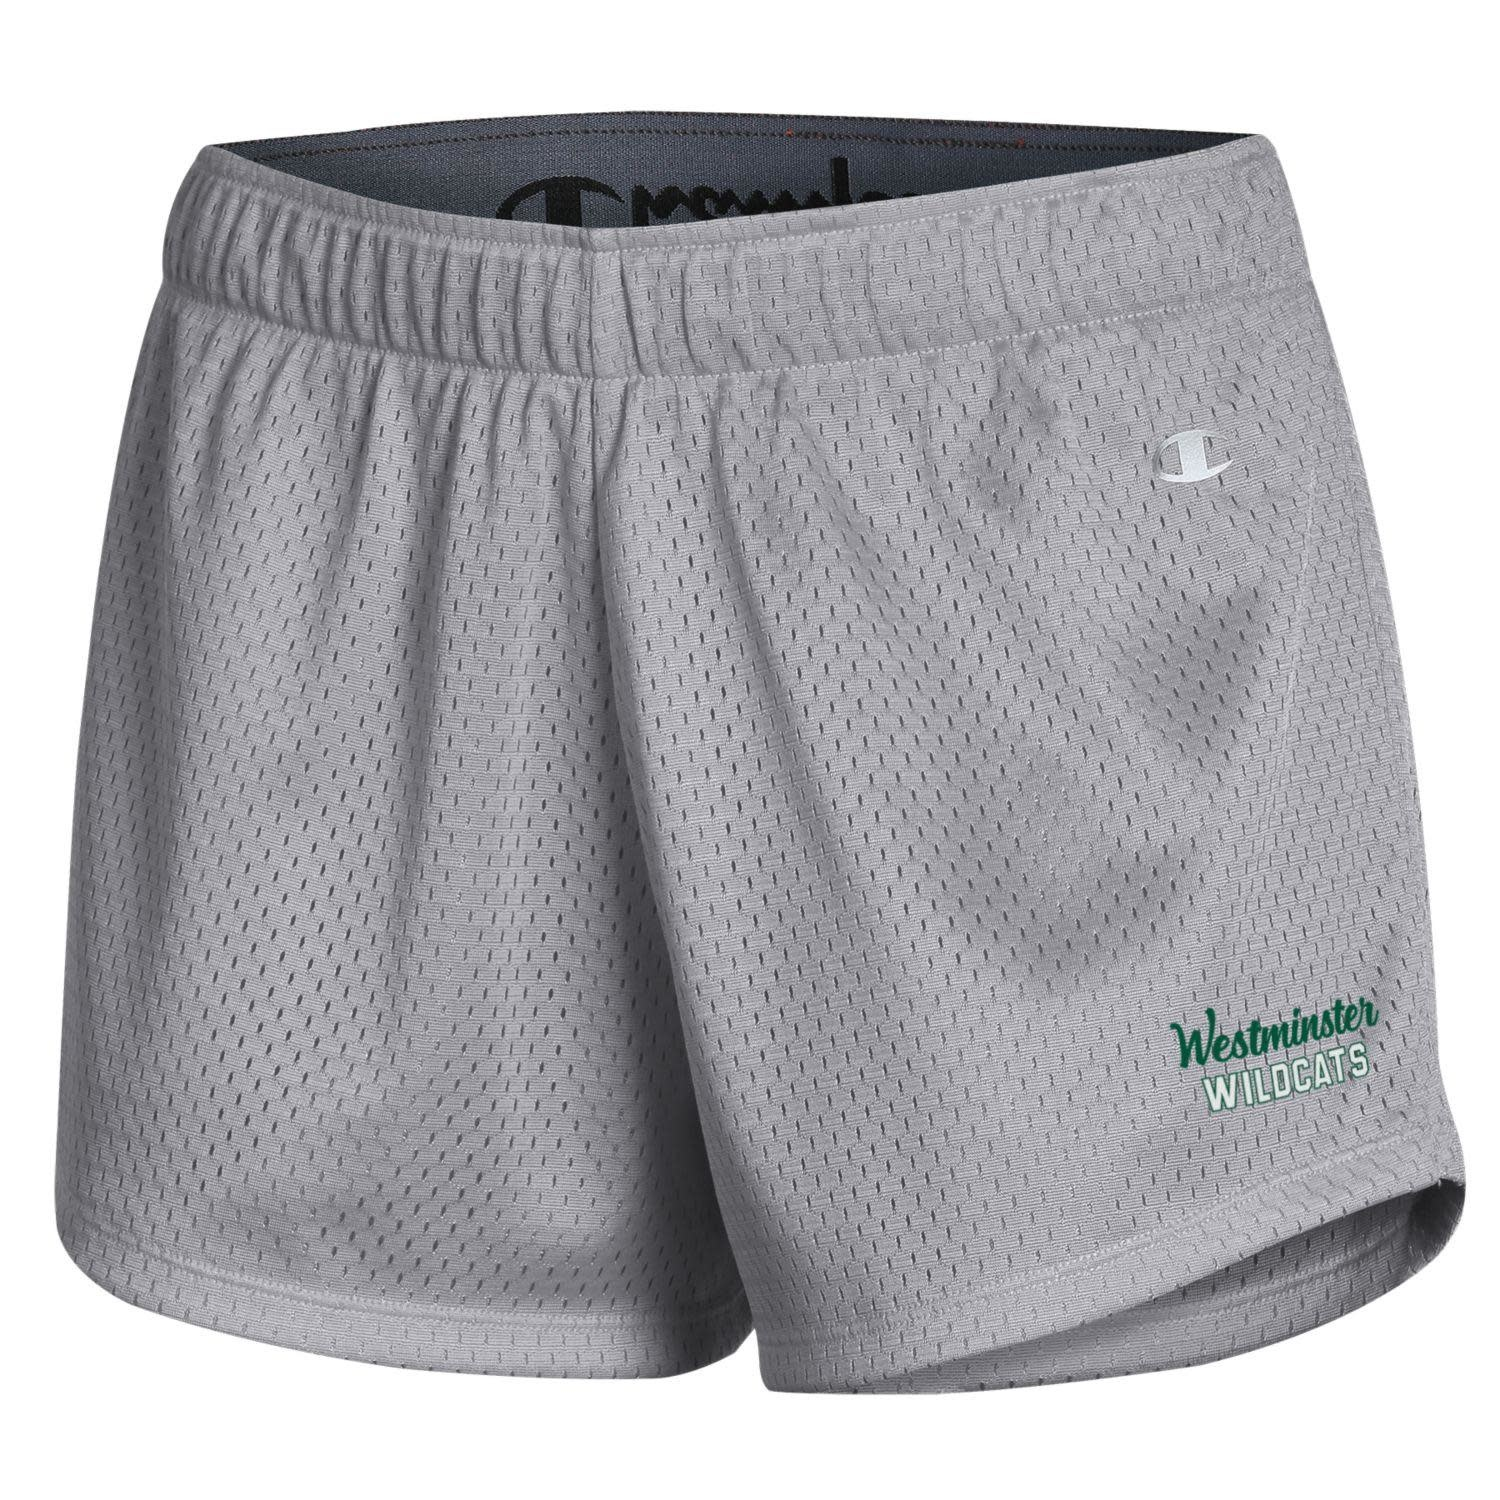 Champion Short: Champion Women's Mesh Short, Active Gray